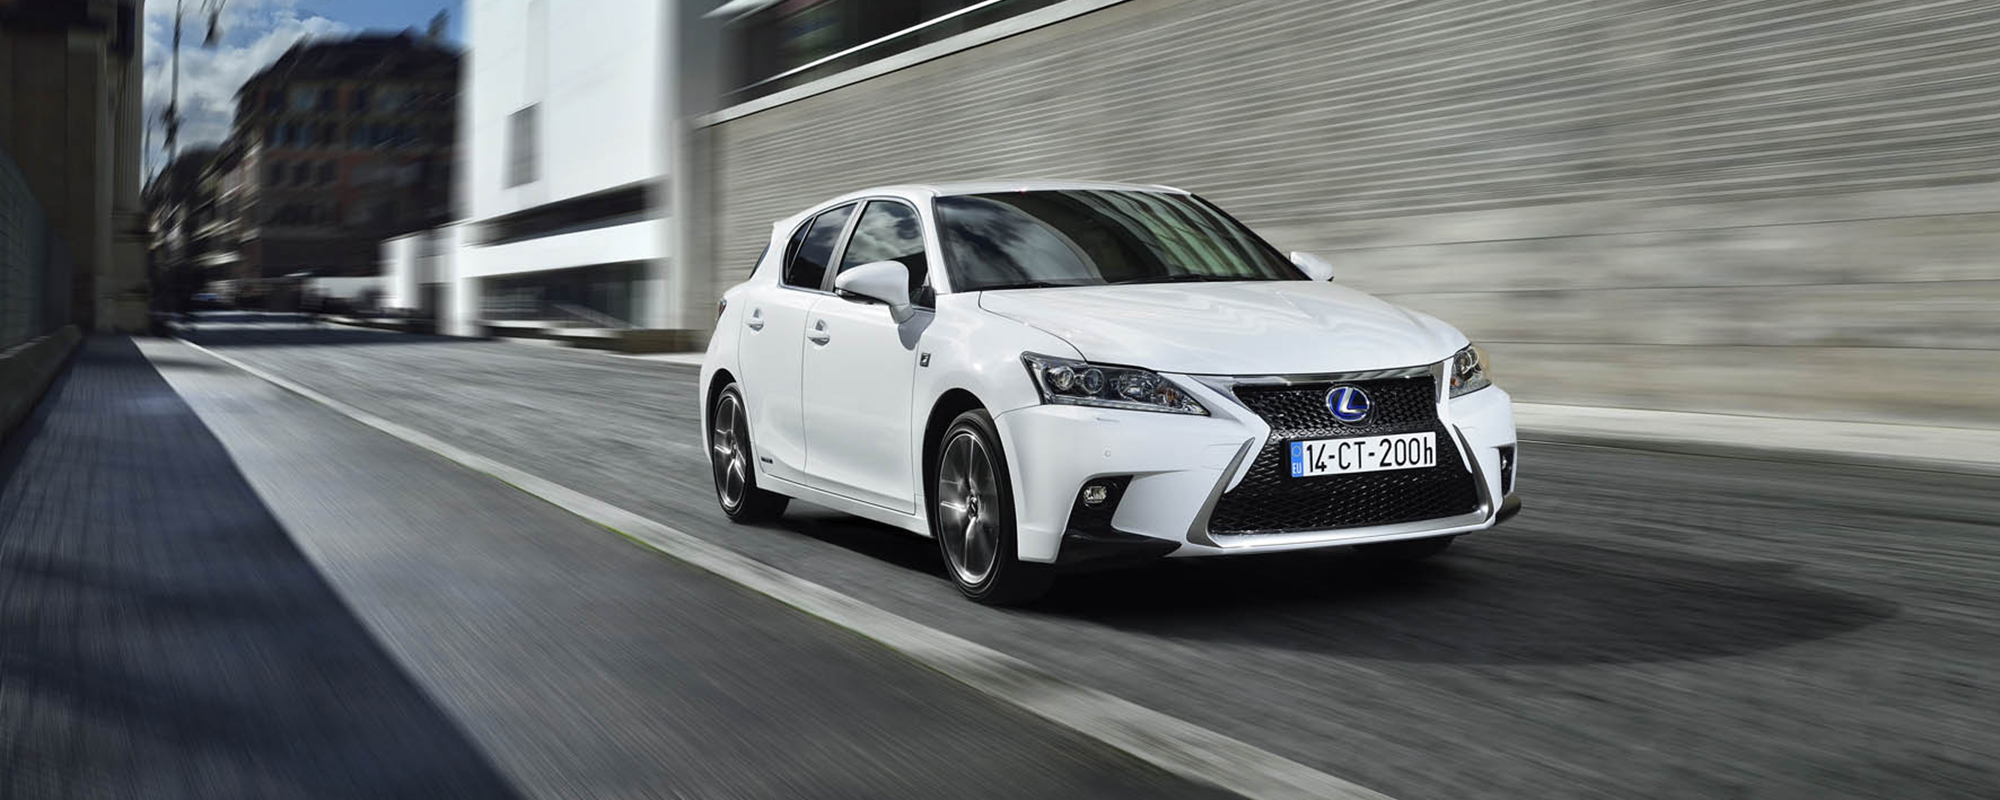 Lexus domineert in ANWB Top 10 Zuinige auto's